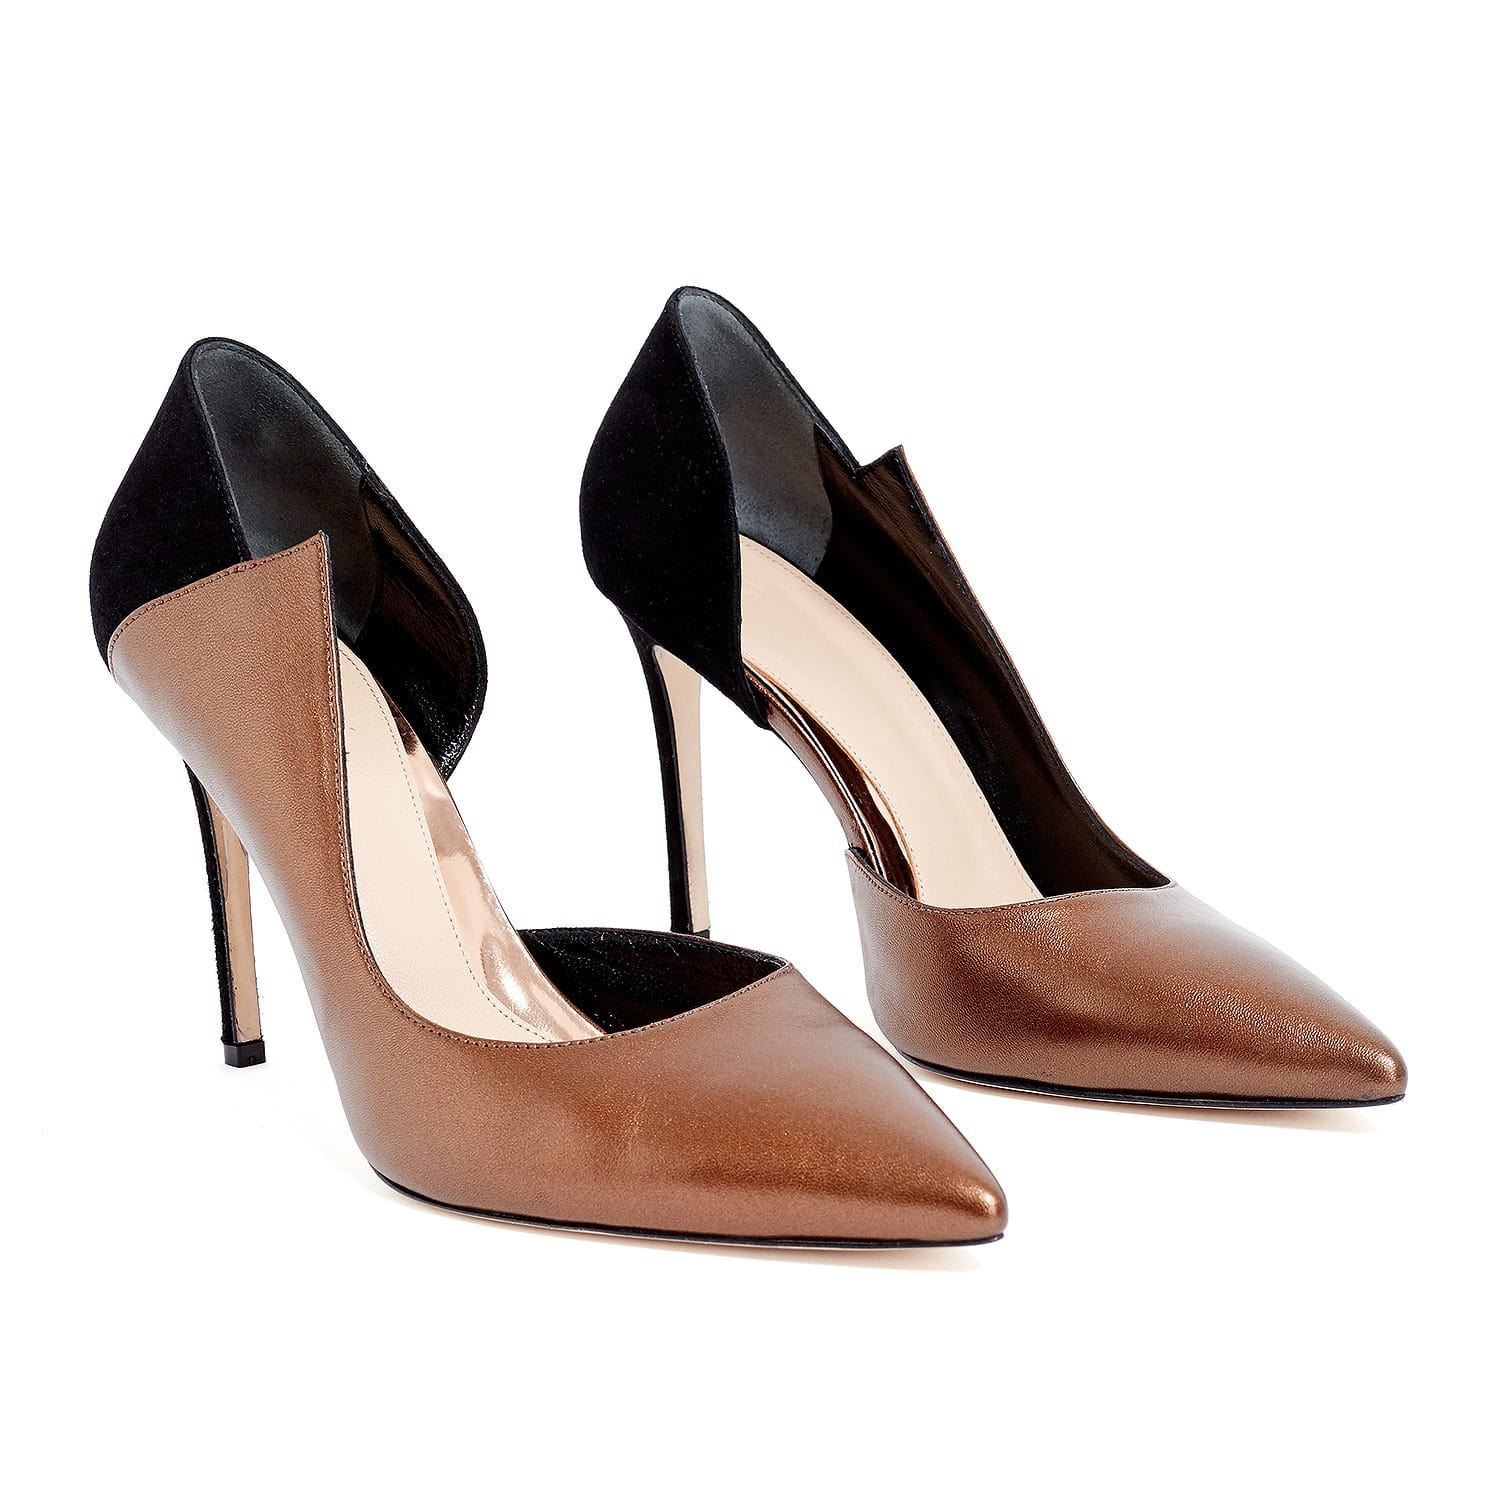 d6cc687c0f1 Sculpture Bronze Leather Pointed Toe Heels by WtR